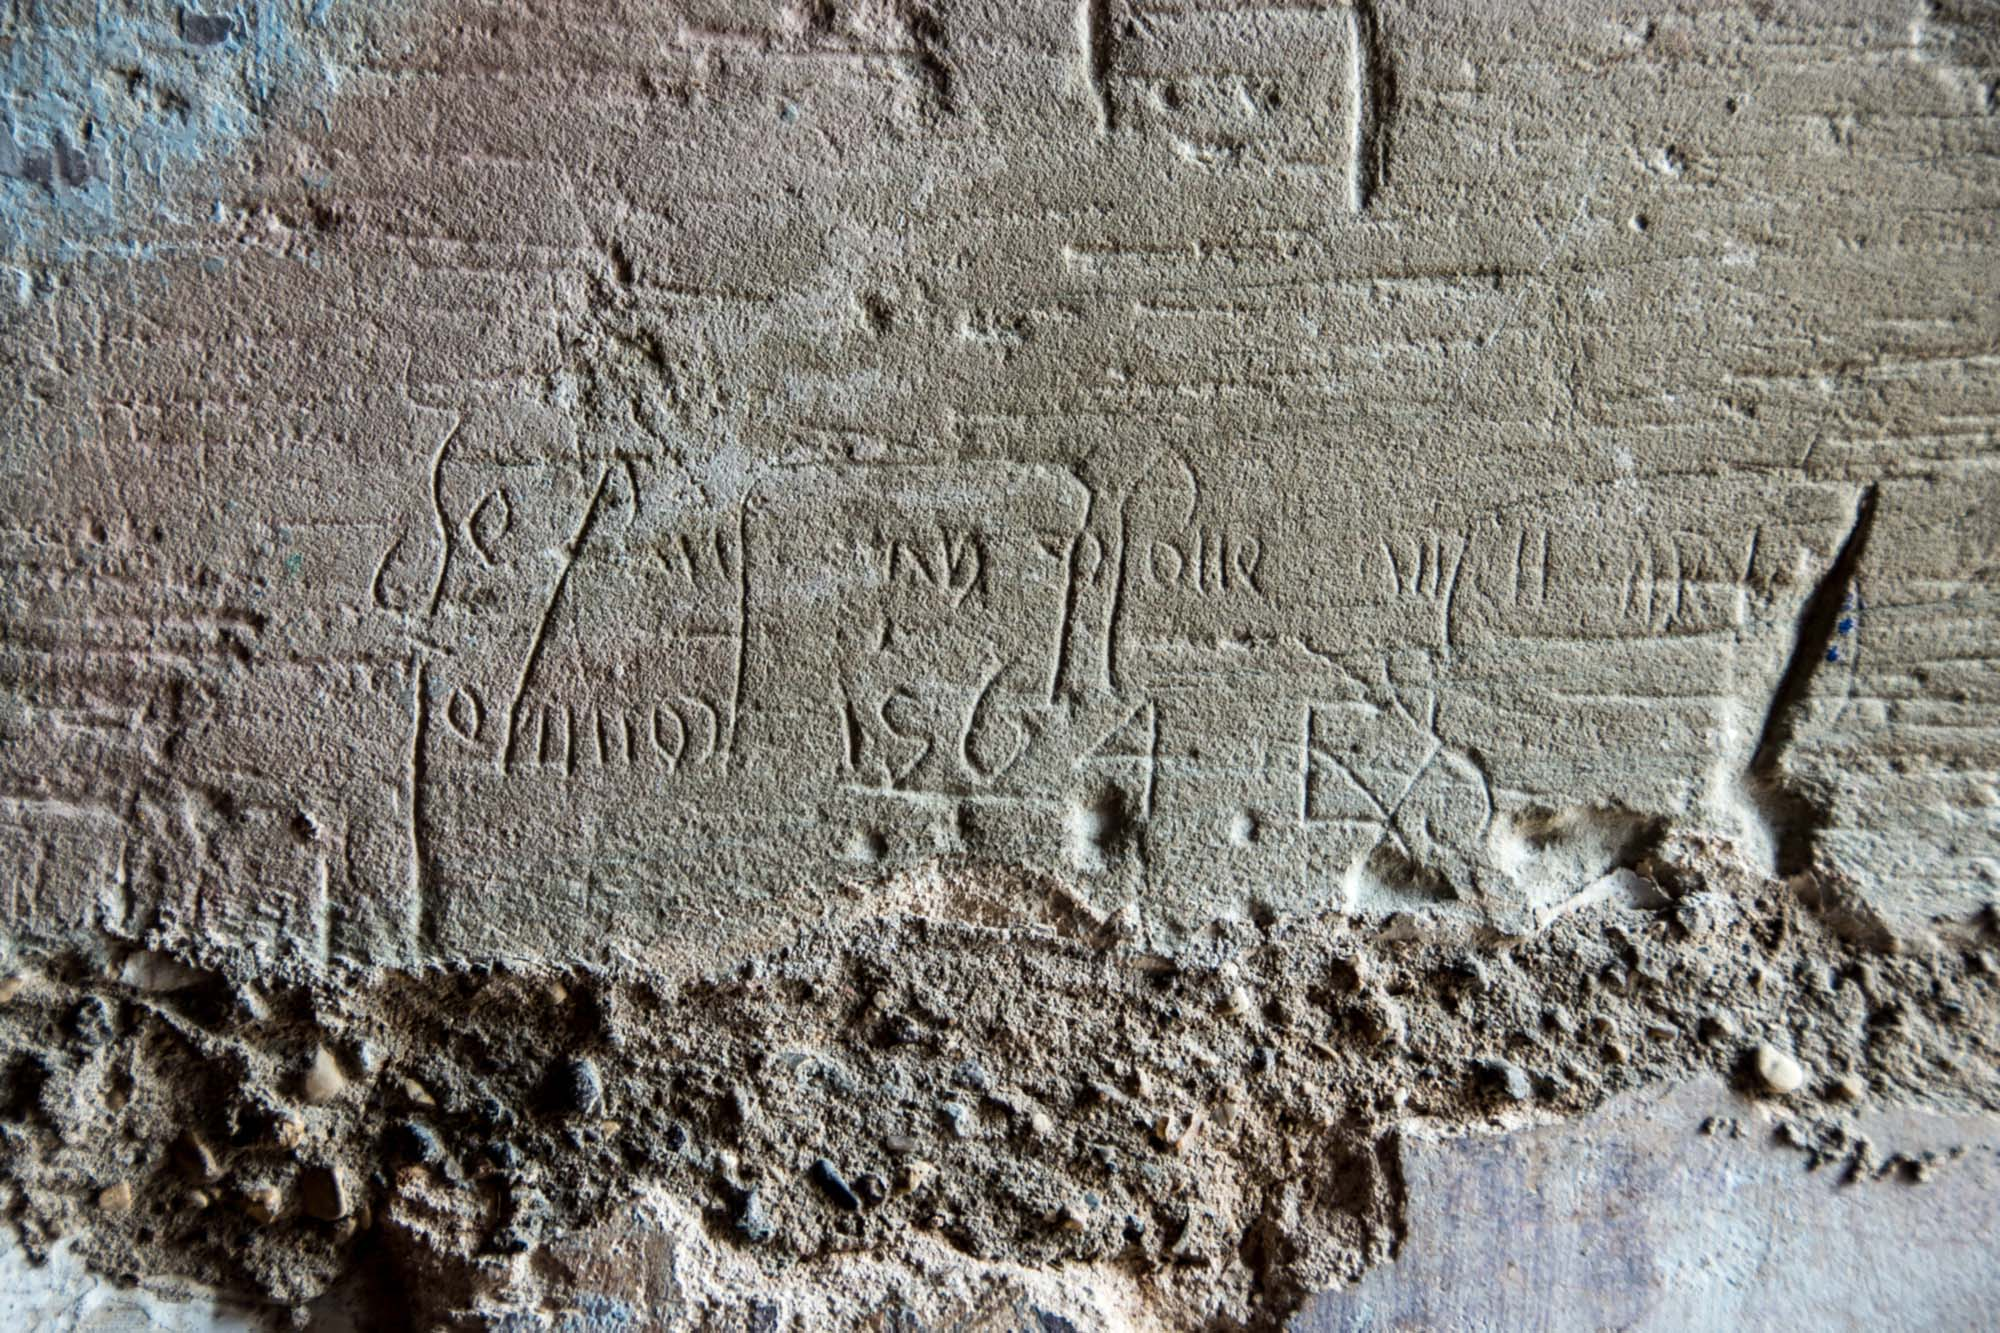 Graffiti left by the Catholic Edmund Smith, imprisoned in The Magazine in 1564 -